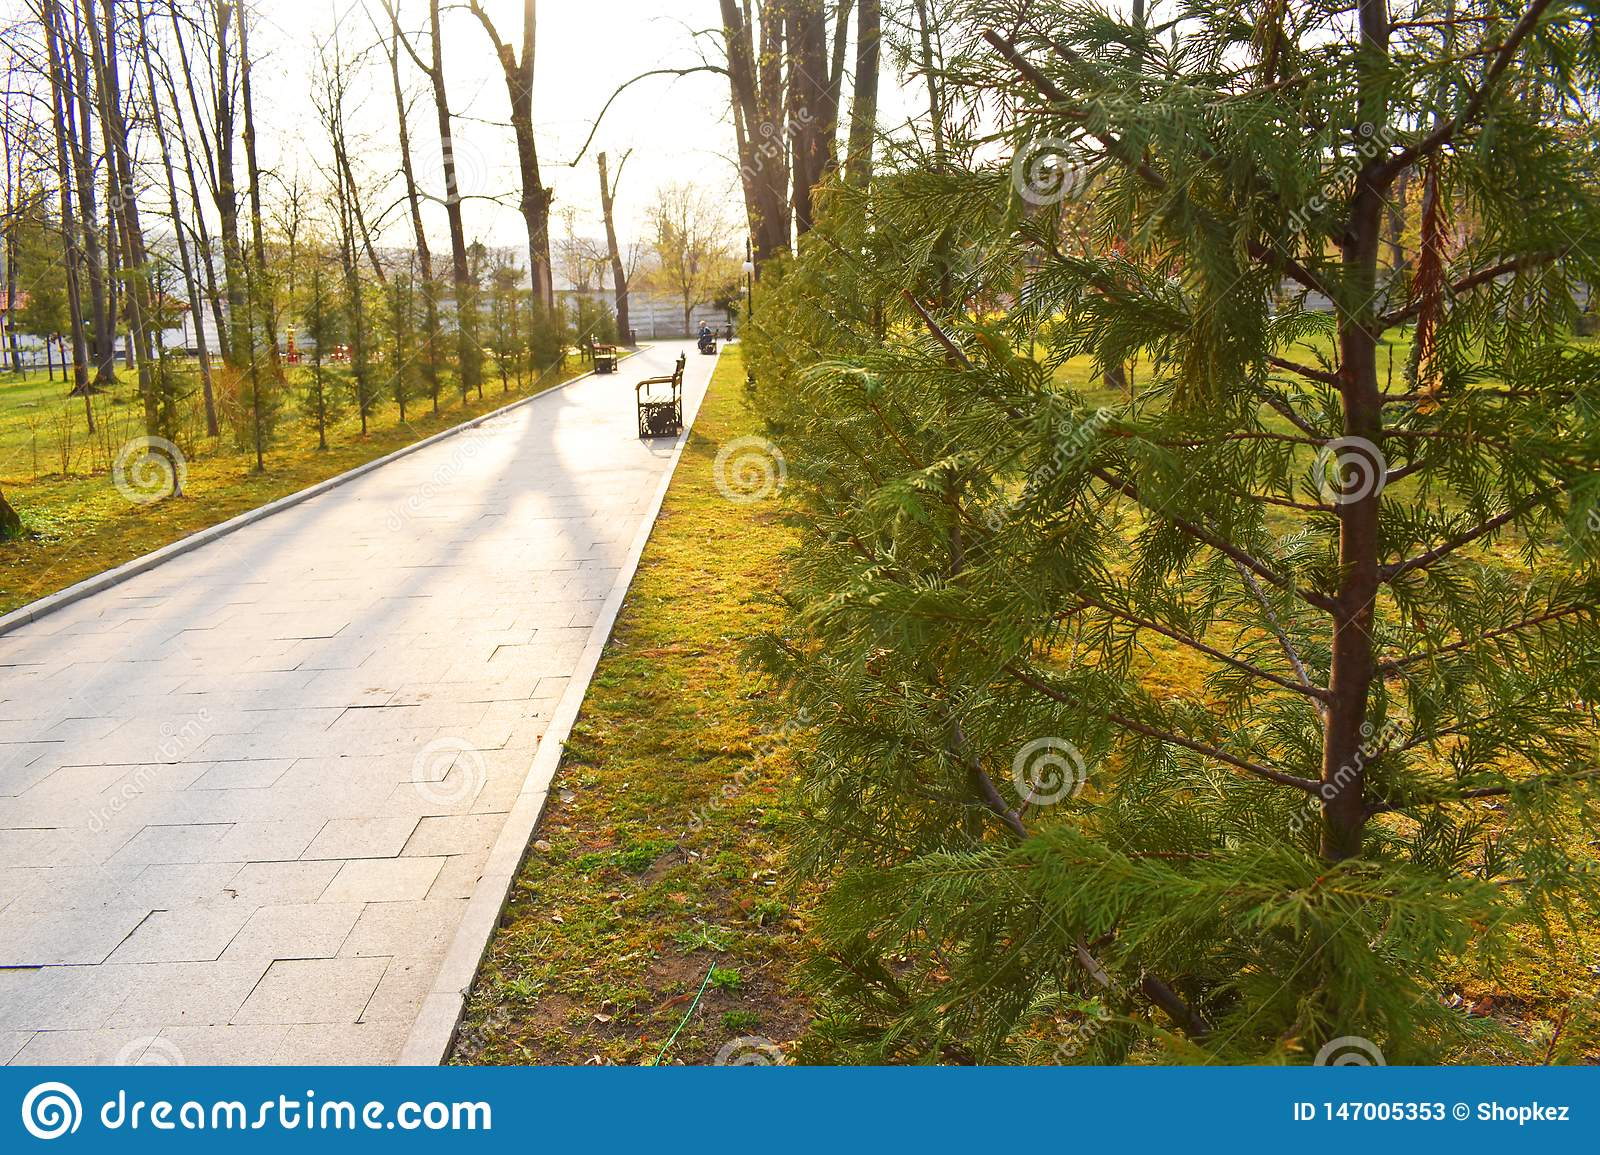 New pathway and beautiful trees track for running or walking and cycling relax in the park on green grass field in the city park